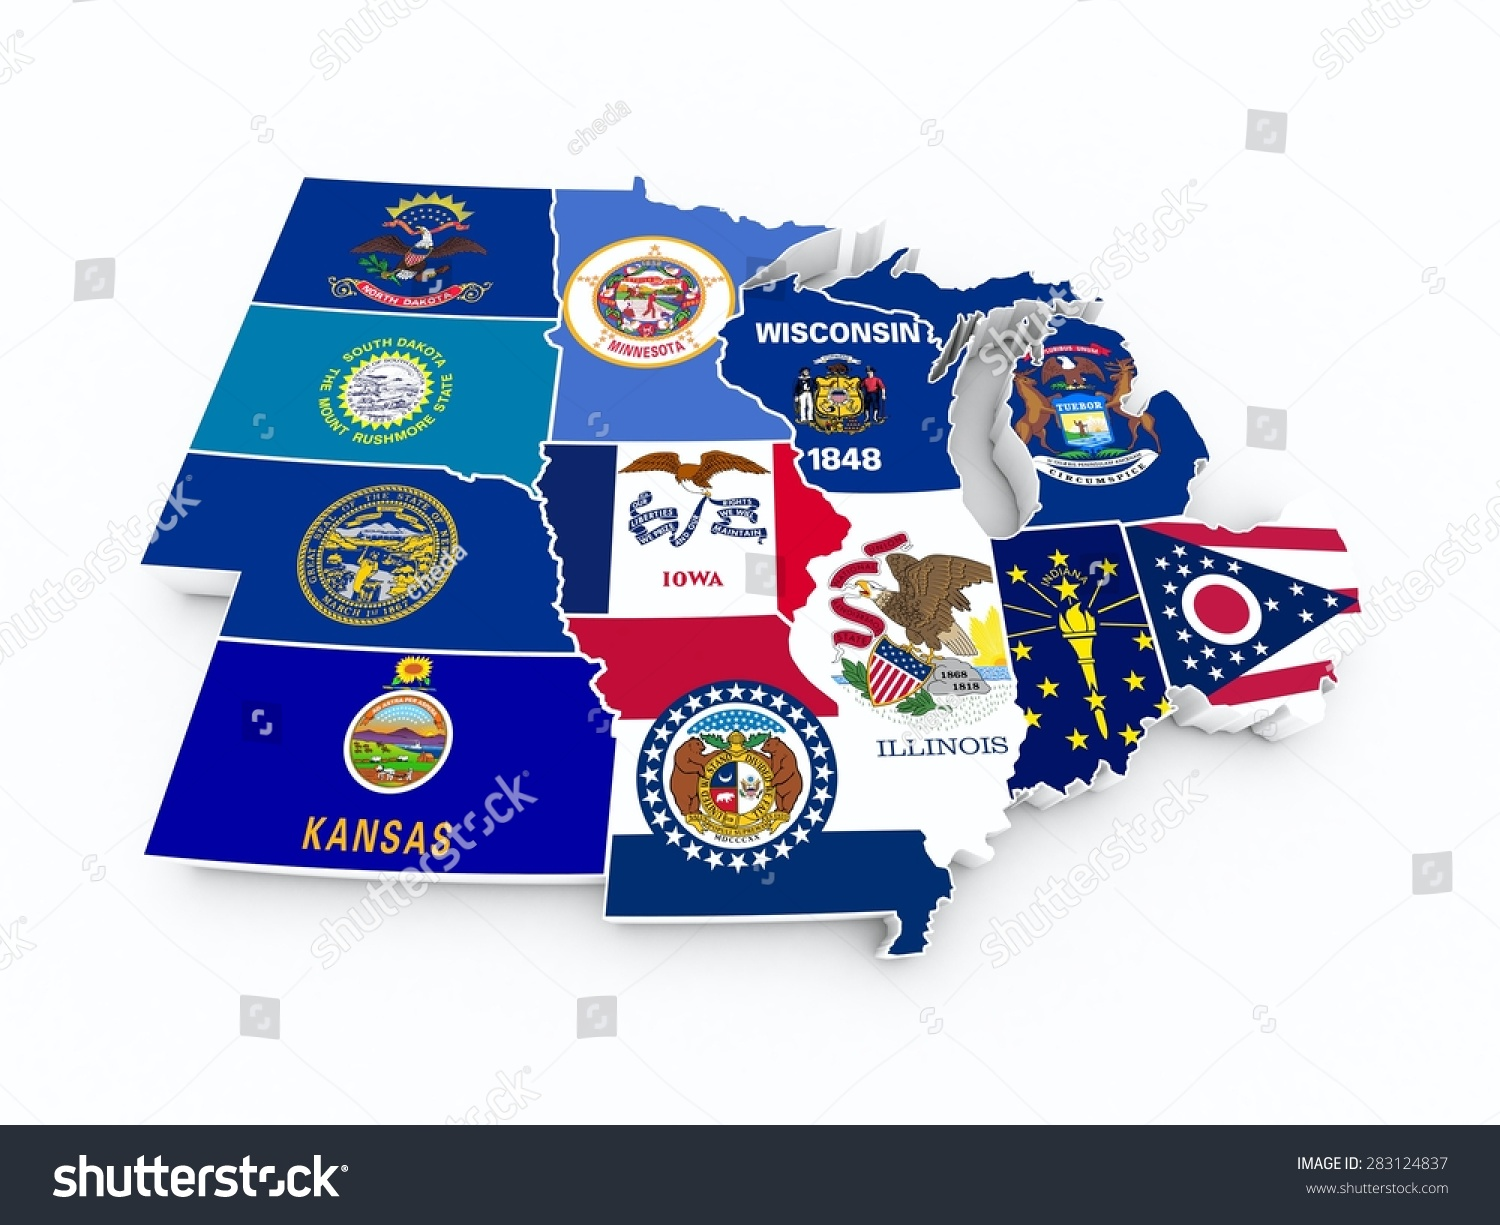 Map Usa Midwest Region New Stock Illustration Shutterstock - Midwest usa map